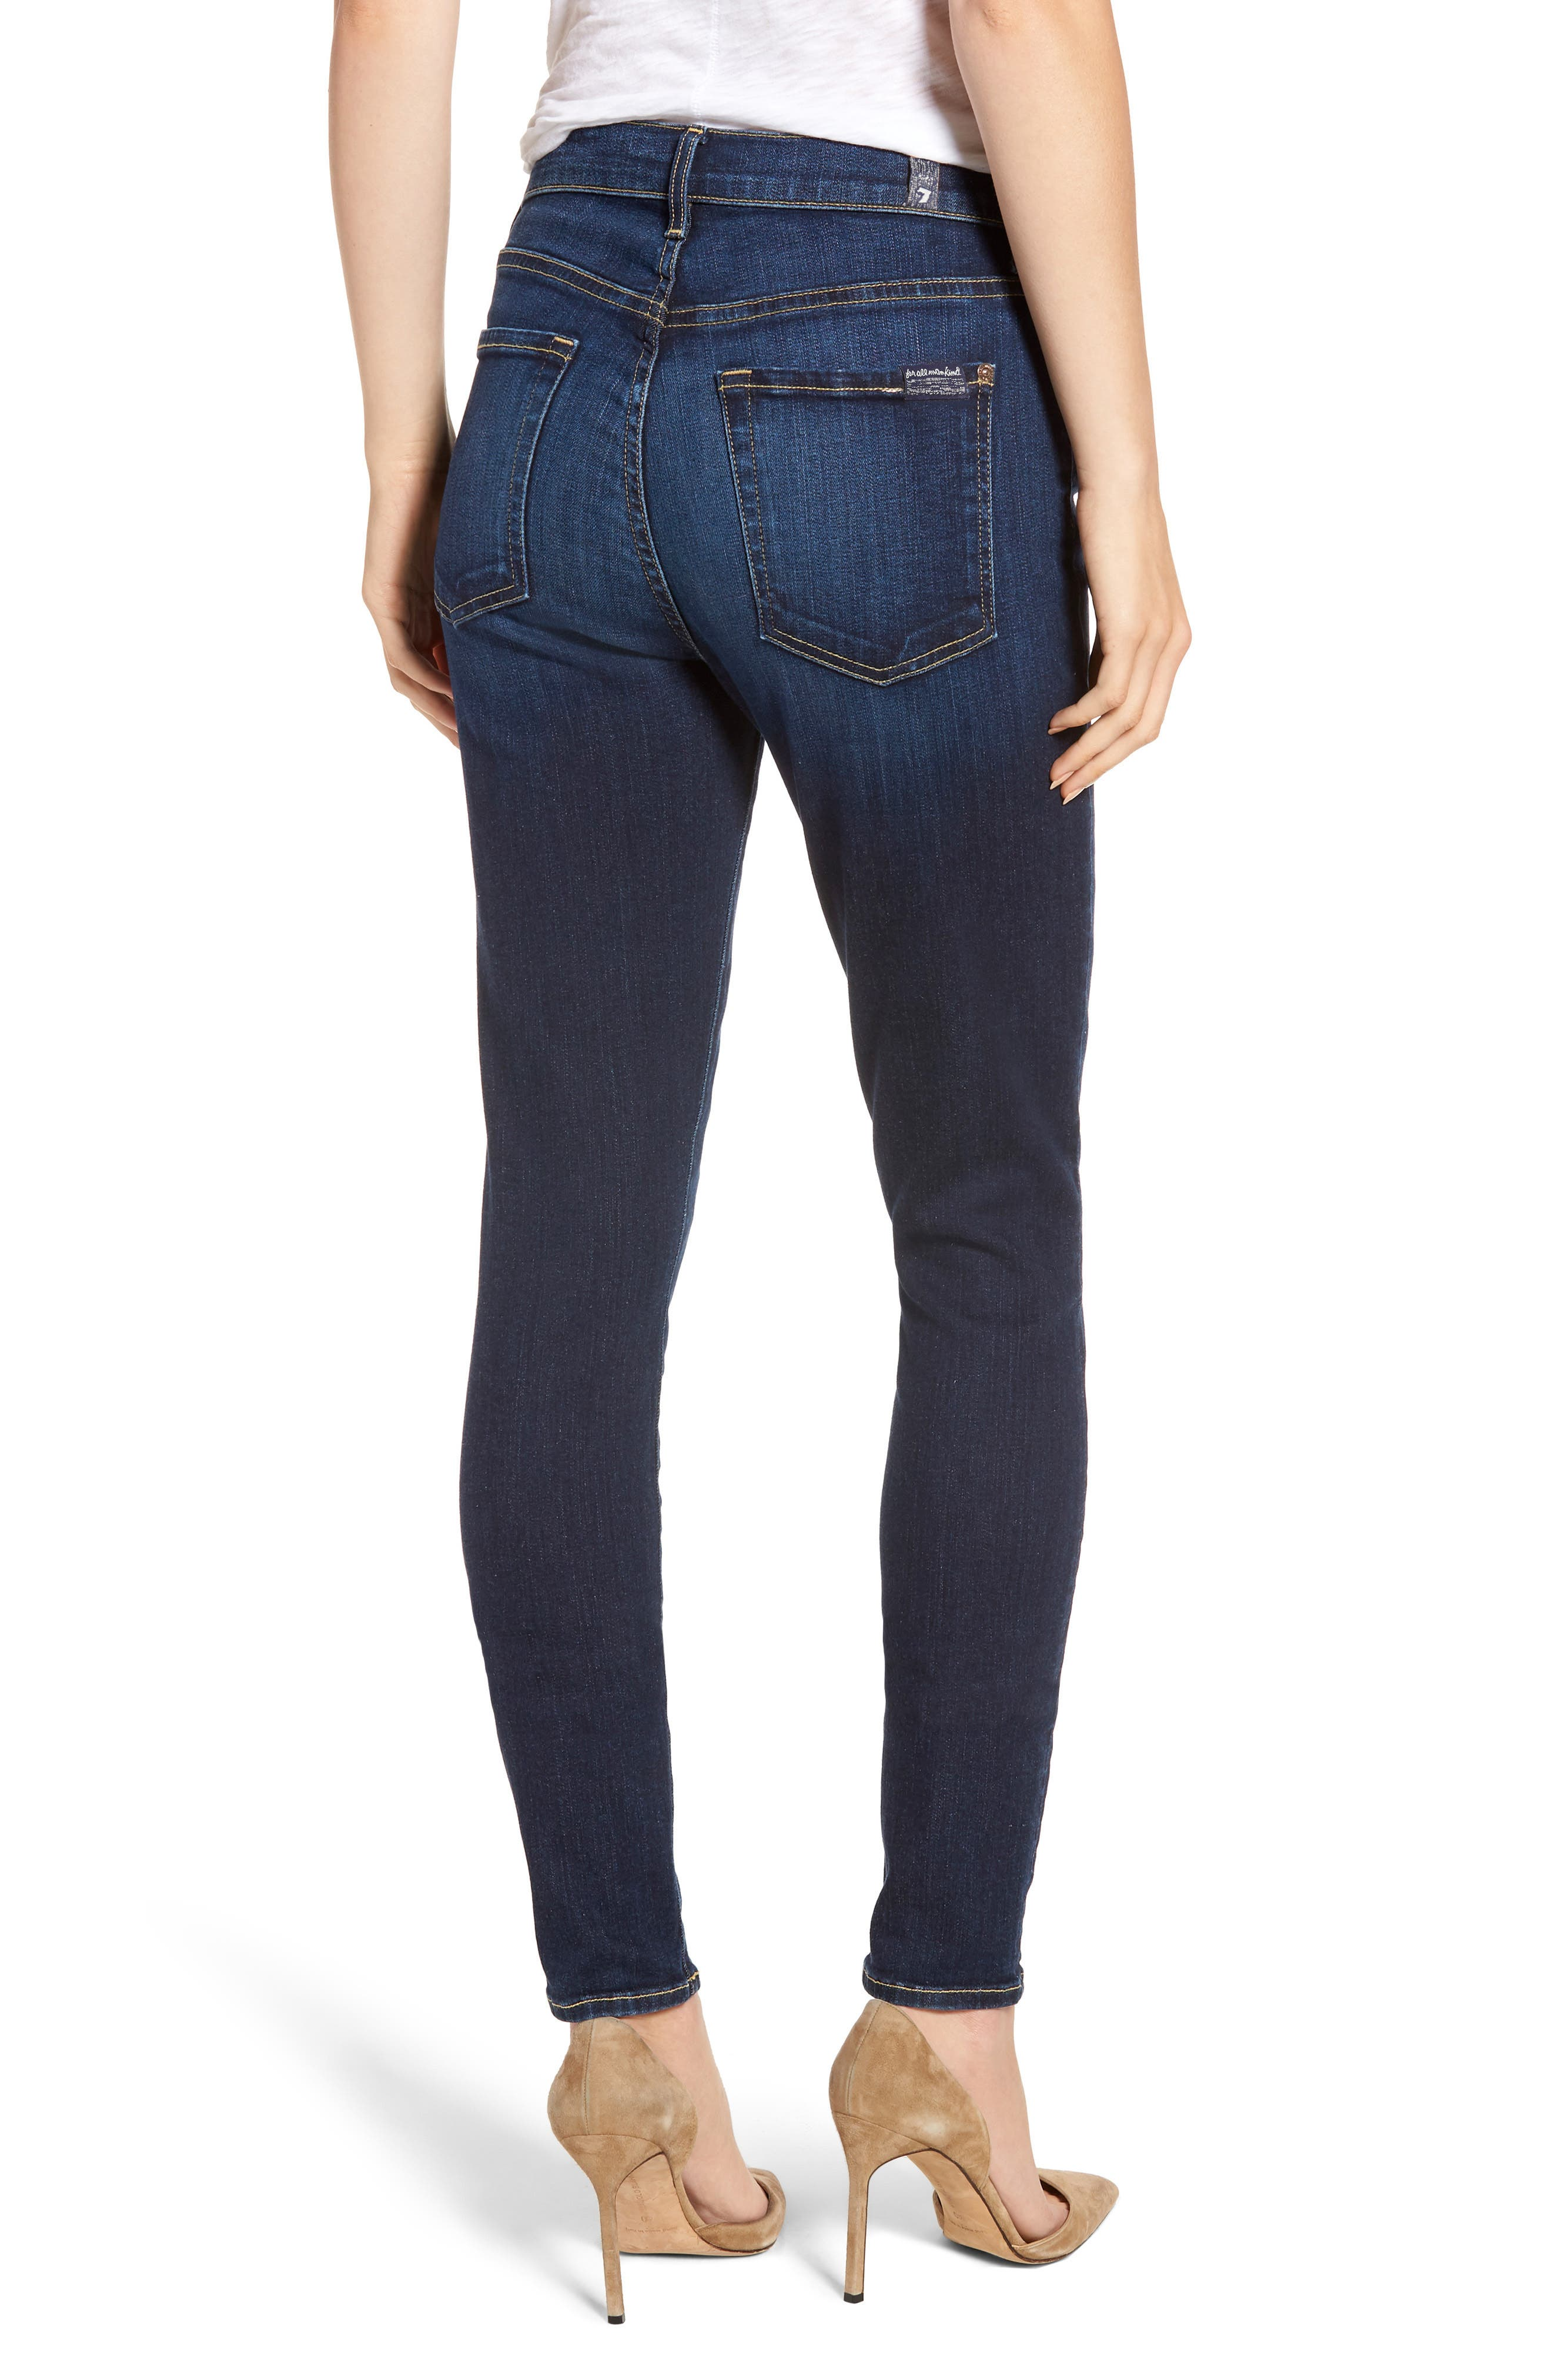 7 FOR ALL MANKIND<SUP>®</SUP>, The High Waist Skinny Jeans, Alternate thumbnail 2, color, AUTHENTIC FATE